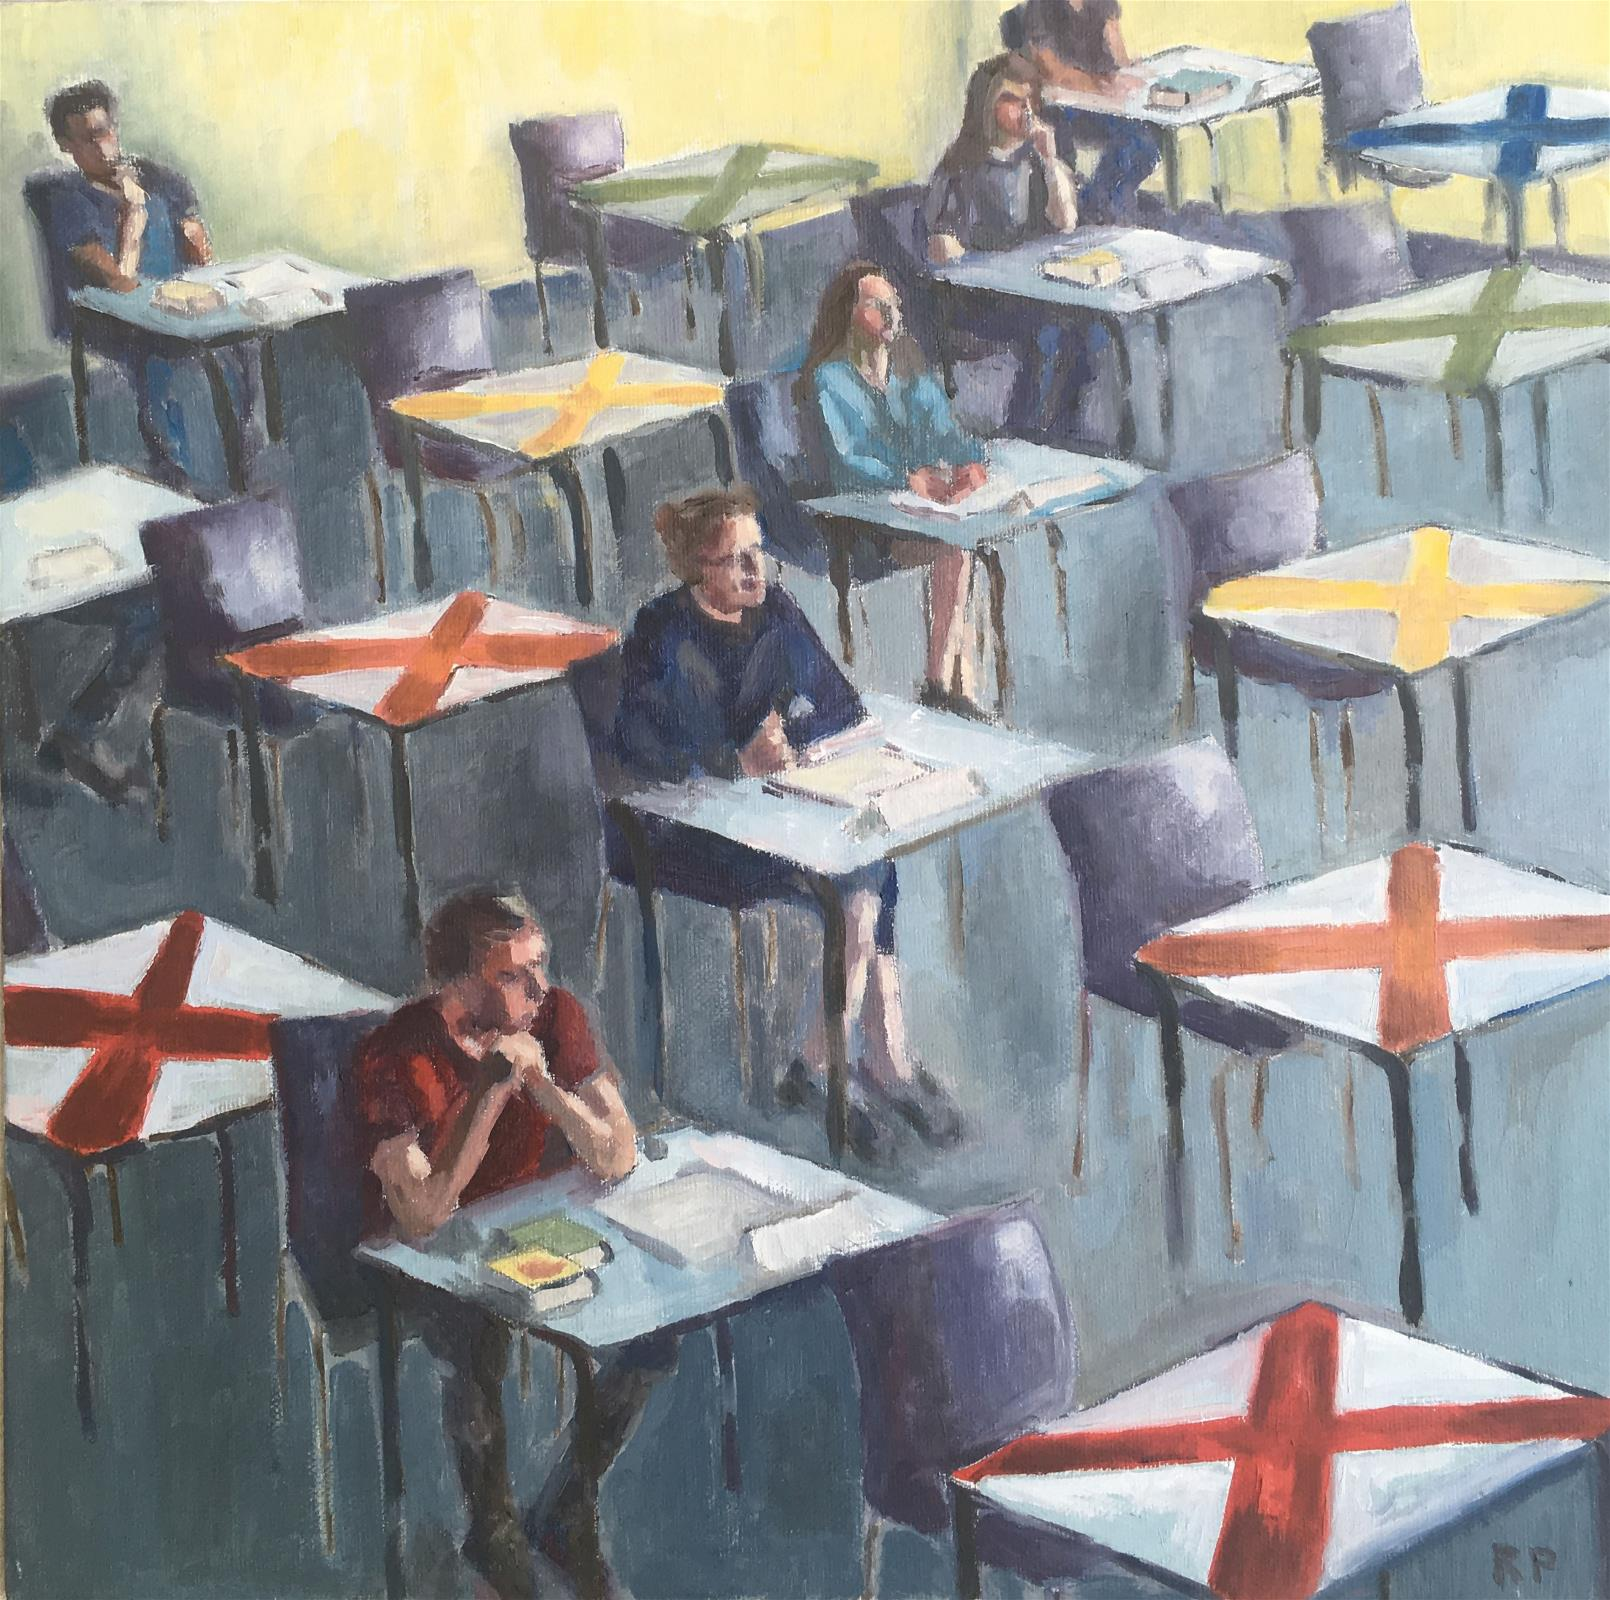 Exam Hall 2021 (unframed)